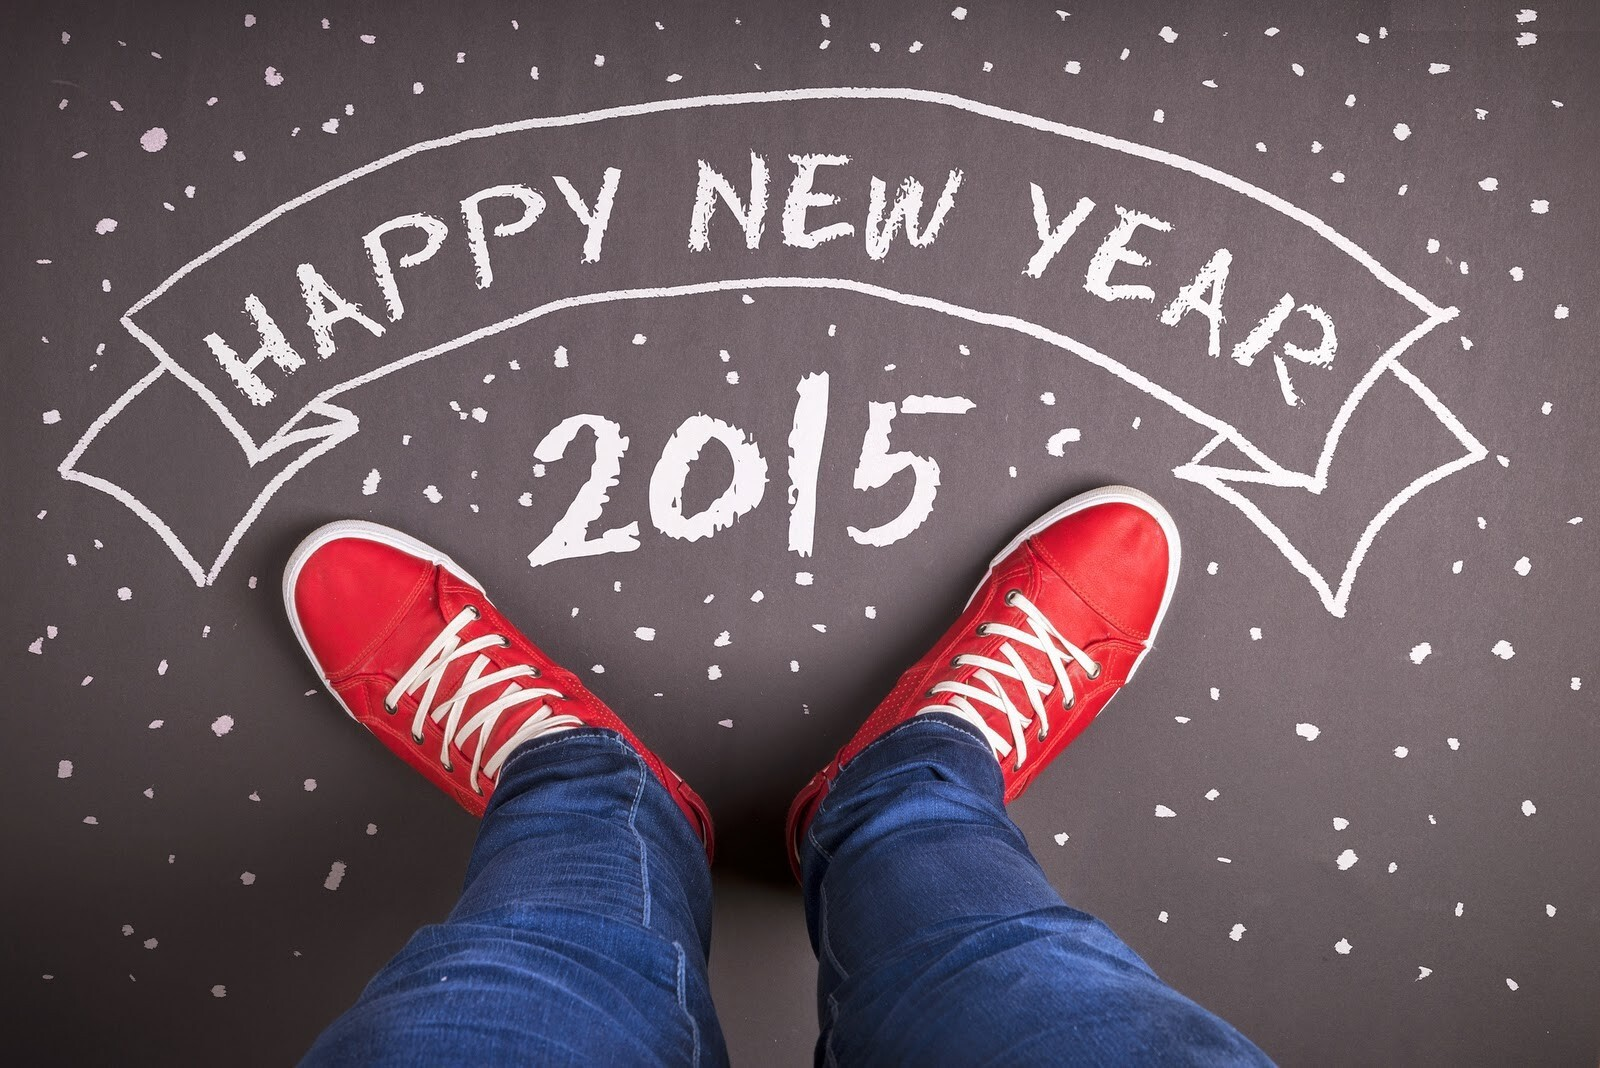 scool theme happy new year 2015 images